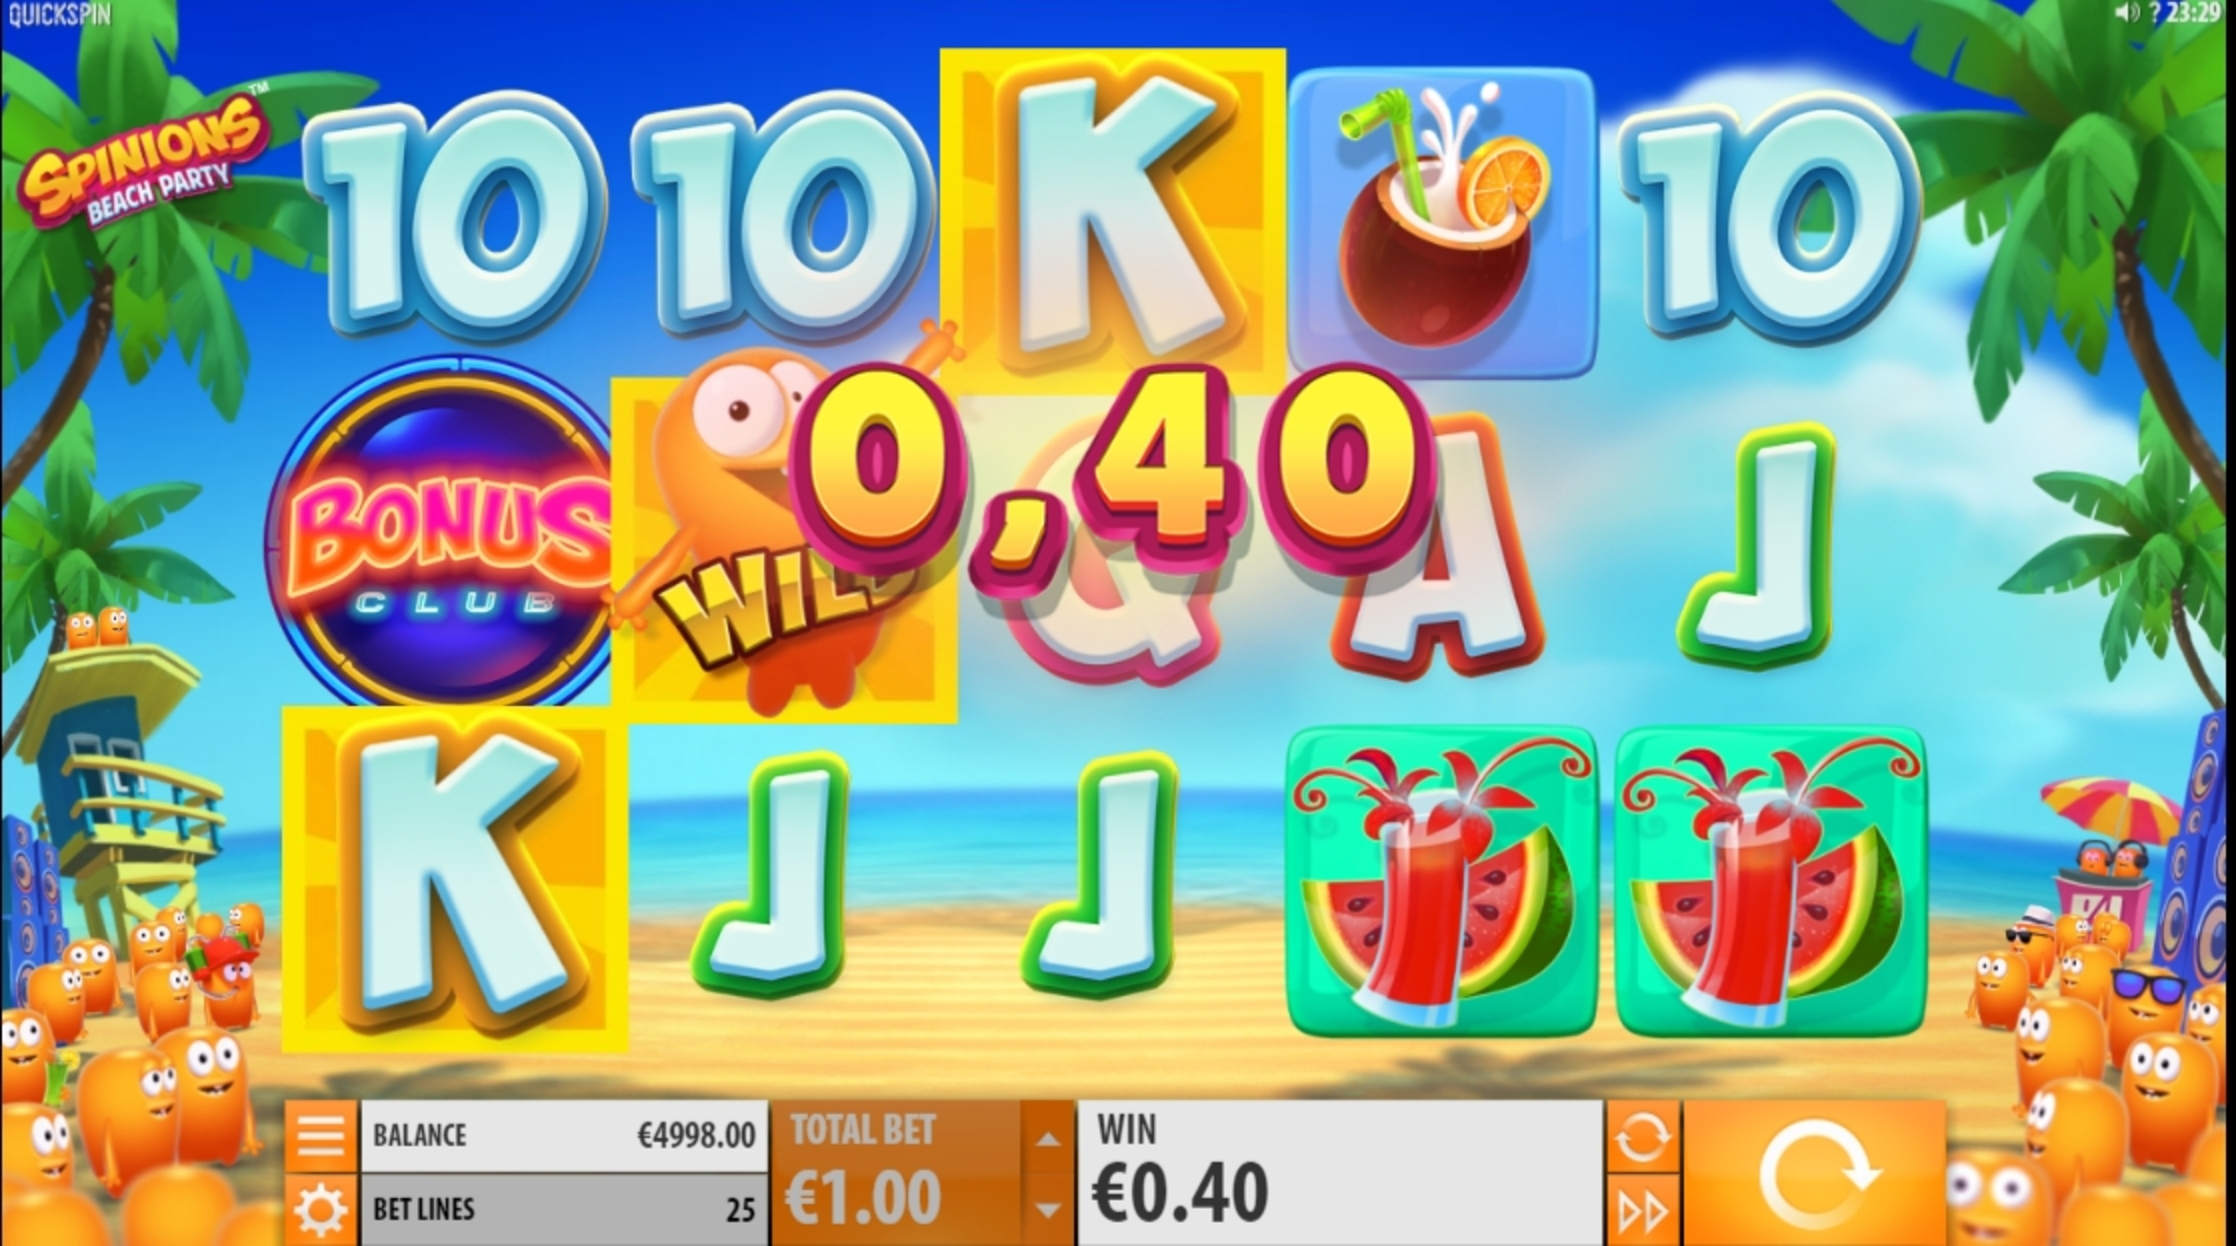 Win Money in Spinions Free Slot Game by Quickspin